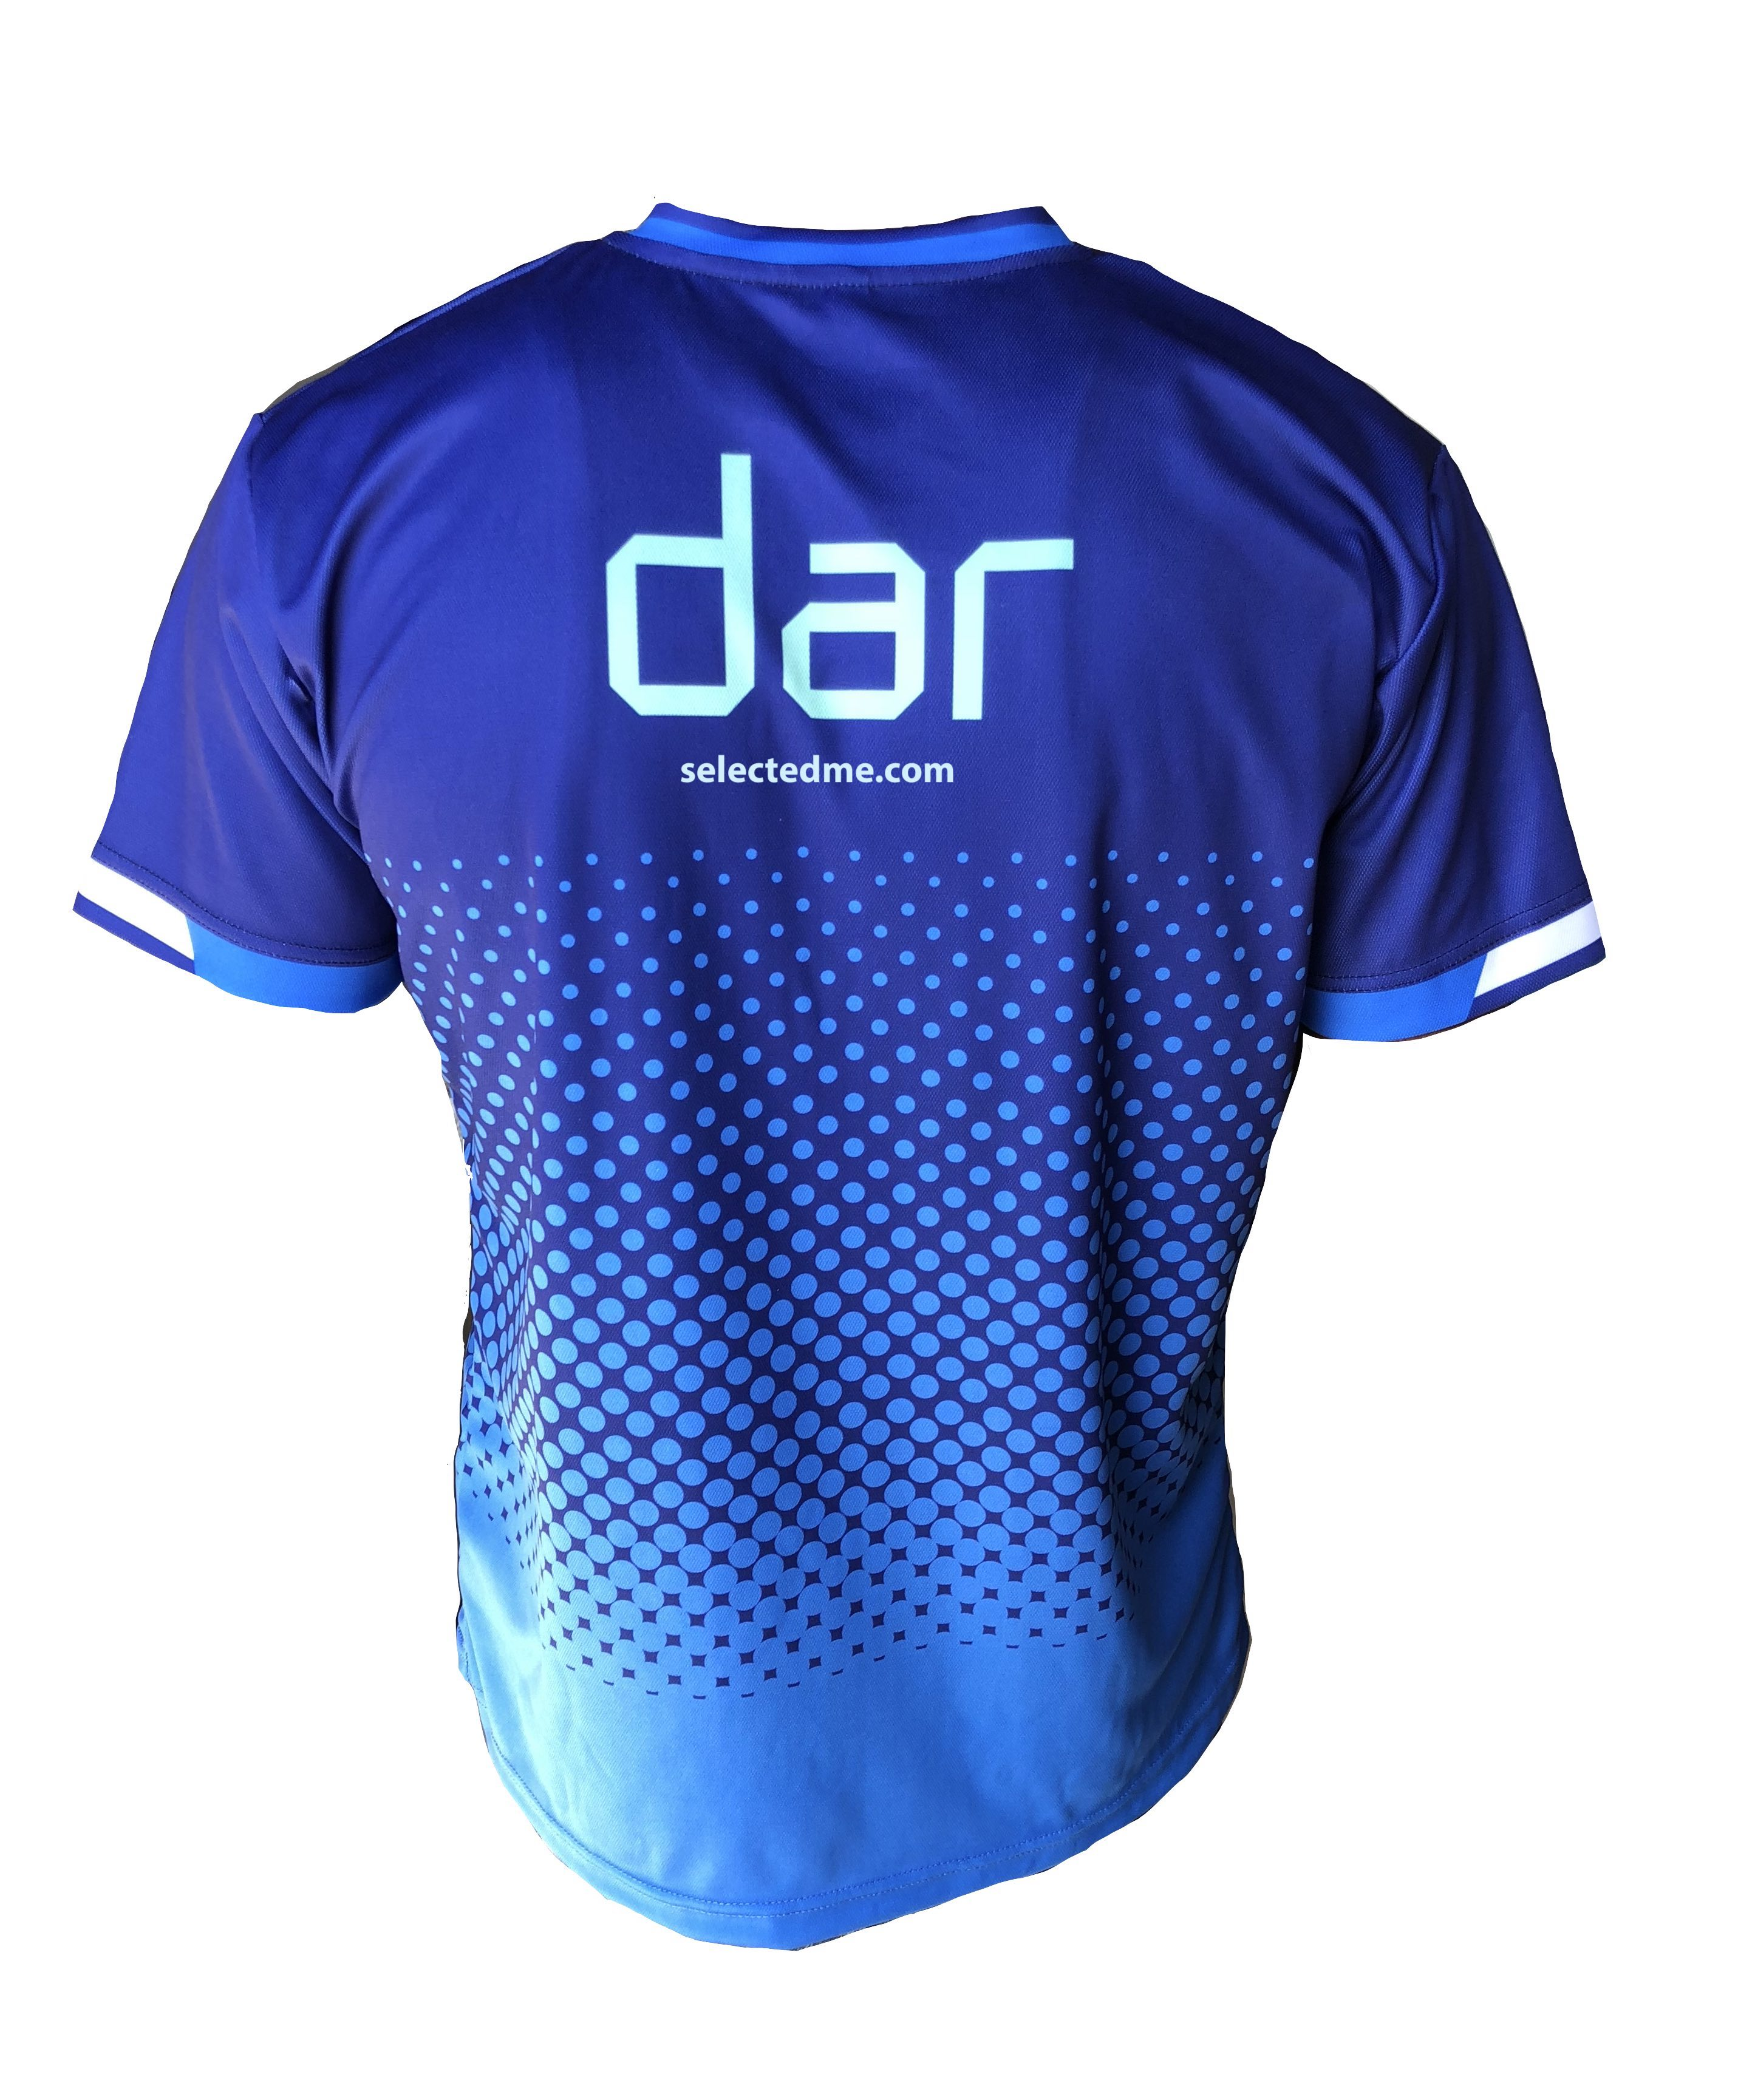 Team Uniforms - Digital Printed Team Jerseys, Sublimated Jerseys